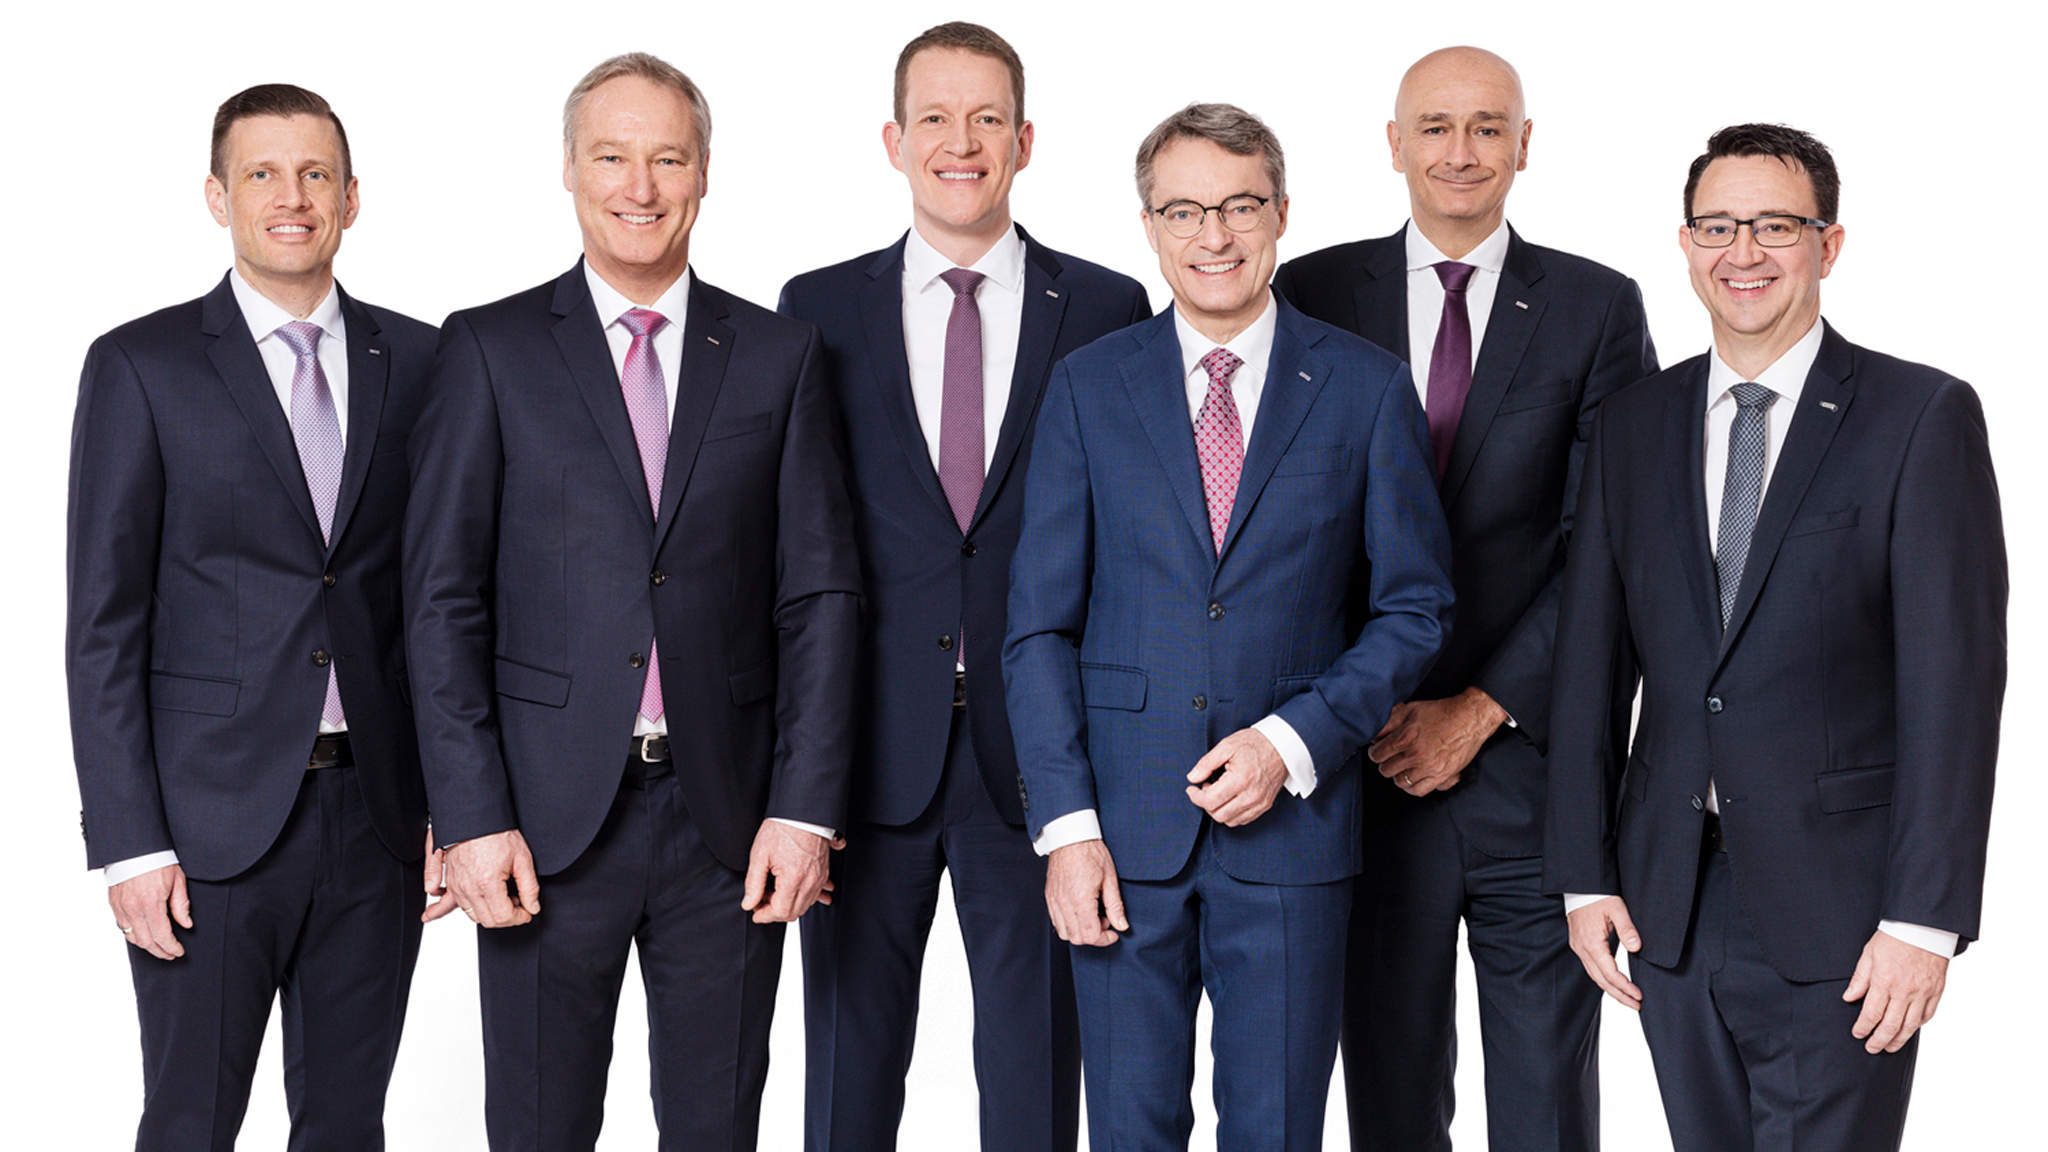 Da esq. para a direita: Alexander Tonn, Managing Director European Logistics Germany (a partir de 1.1.2021 COO Road Logistics), Michael Schilling, COO Road Logistics; Burkhard Eling, CFO (a partir de 1.1.2021 CEO); Bernhard Simon, CEO; Edoardo Podestà, COO Air & Sea Logistics; Stefan Hohm, Corporate Director Corporate Solutions, Research & Development (a partir de 1.1.2021 CDO)